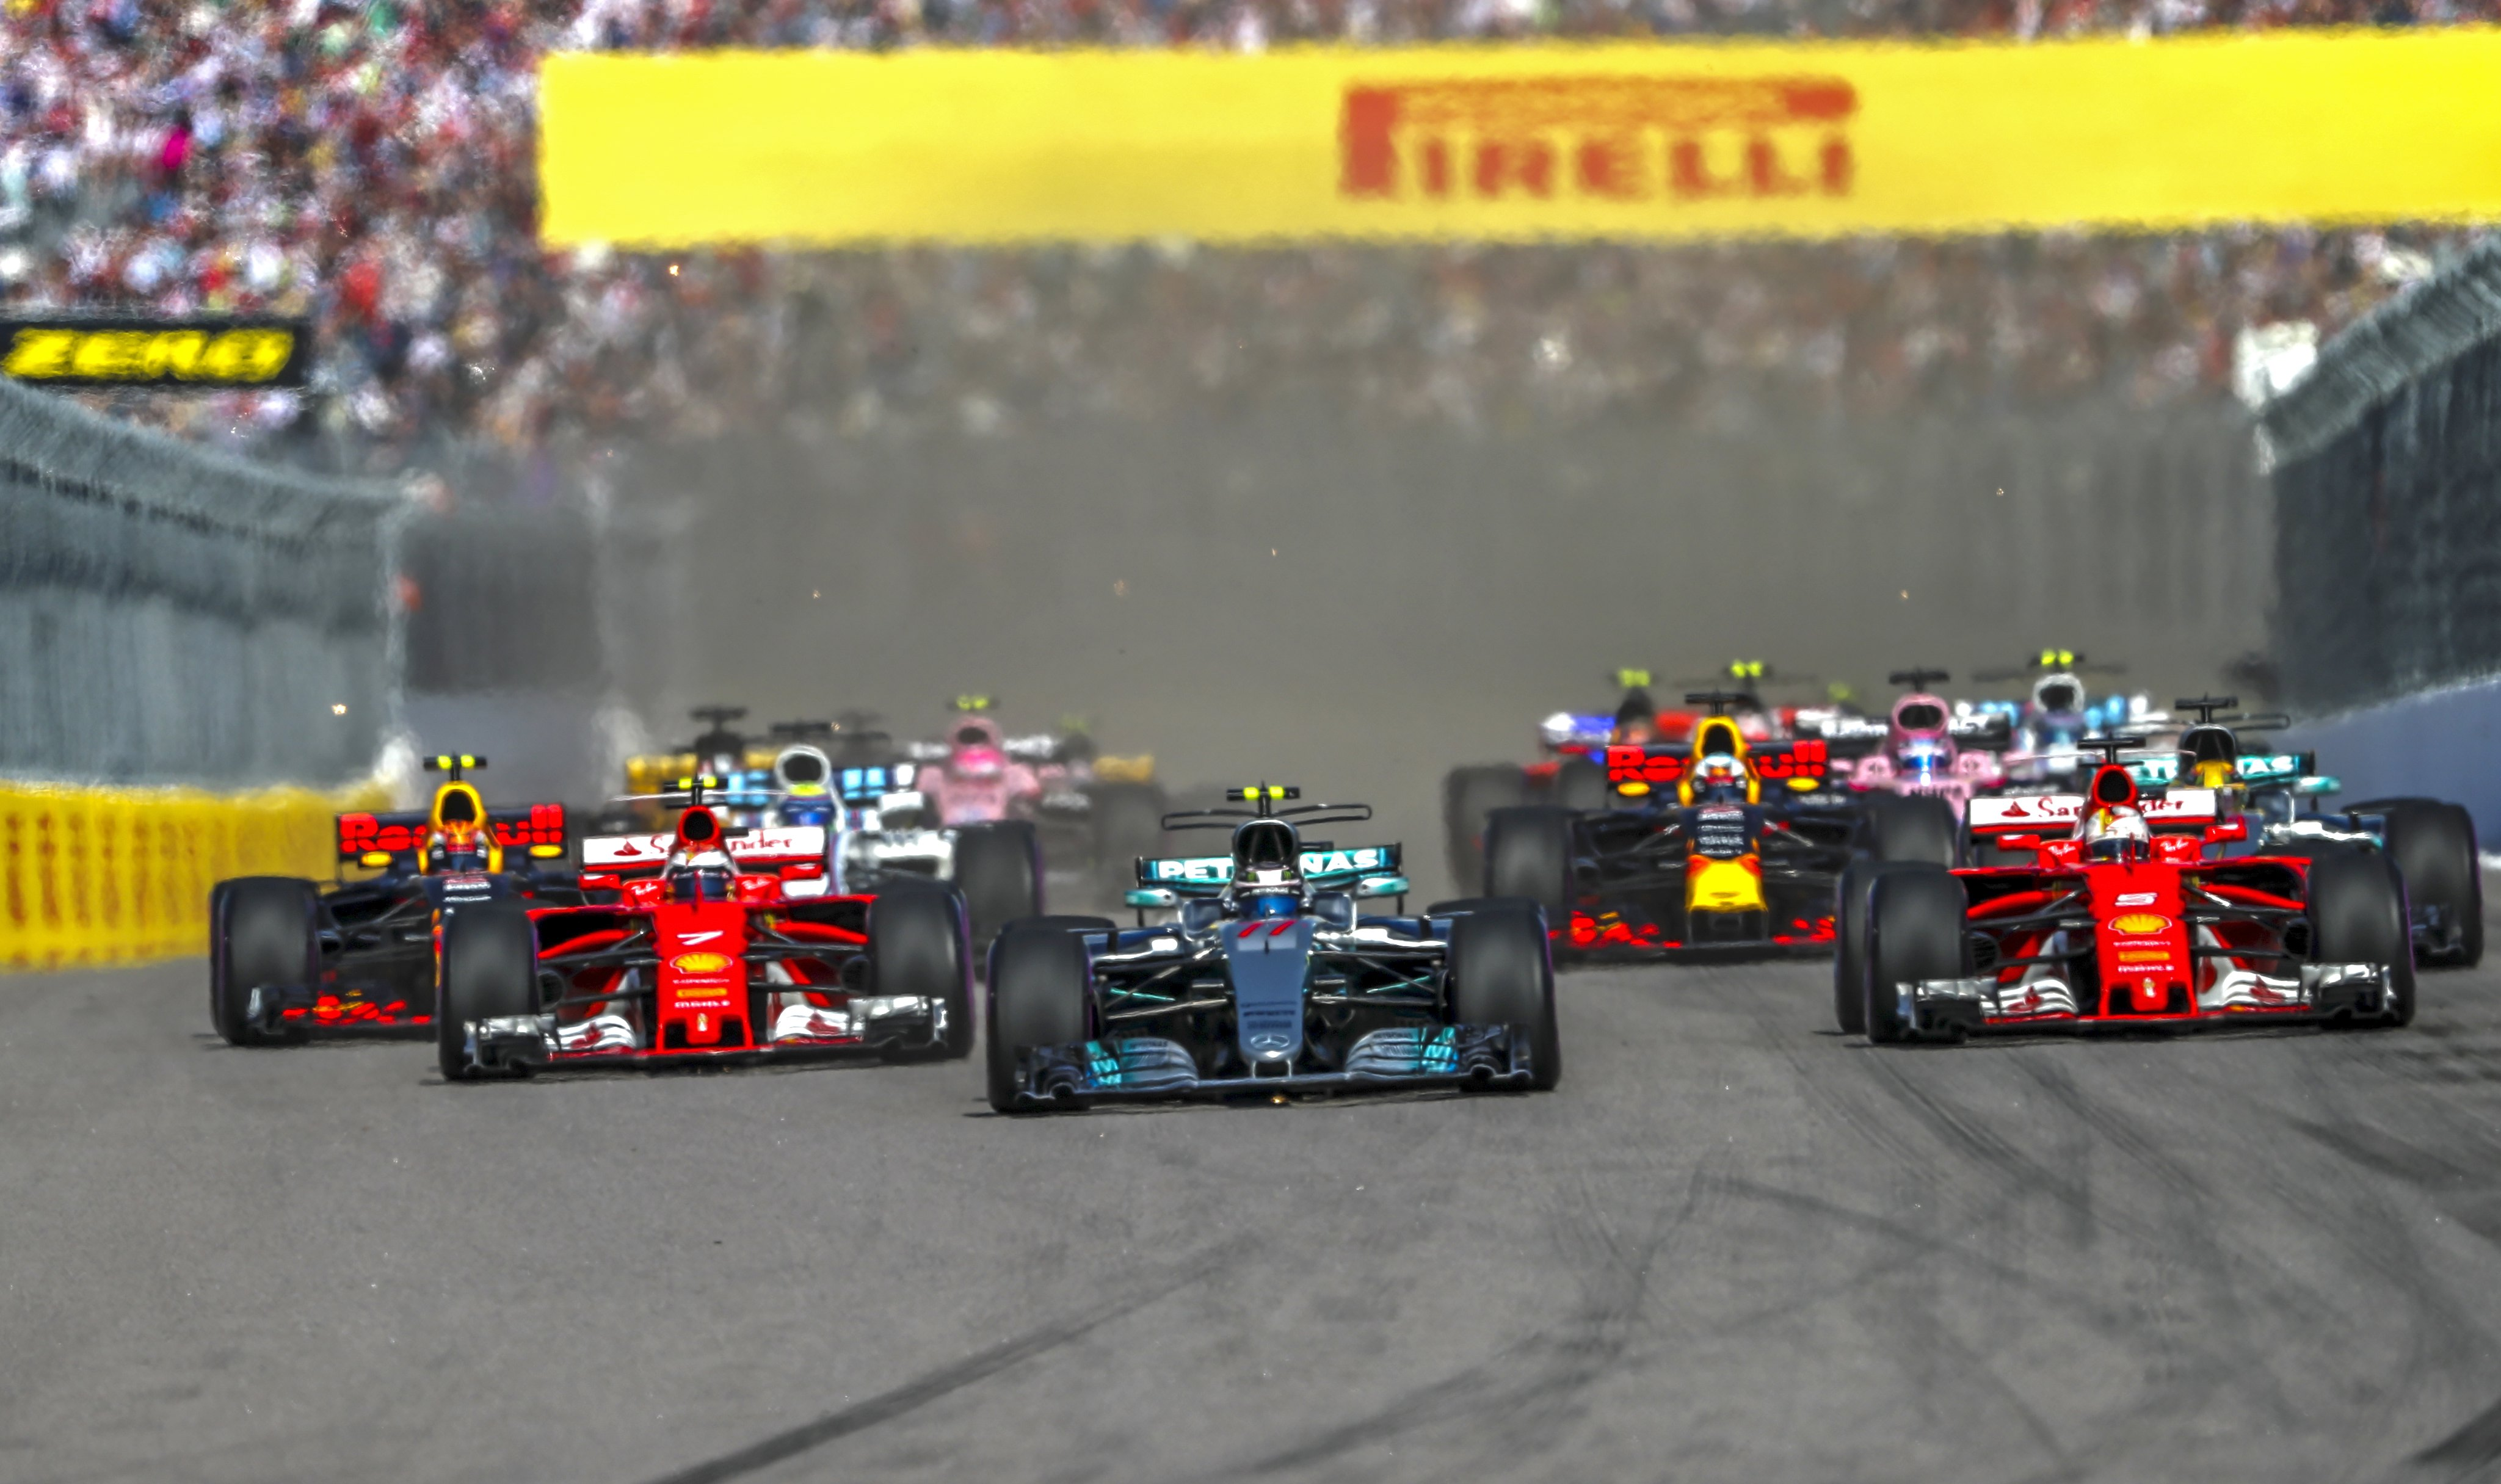 FORMULA 1 – Γκραν Πρι της Ρωσίας